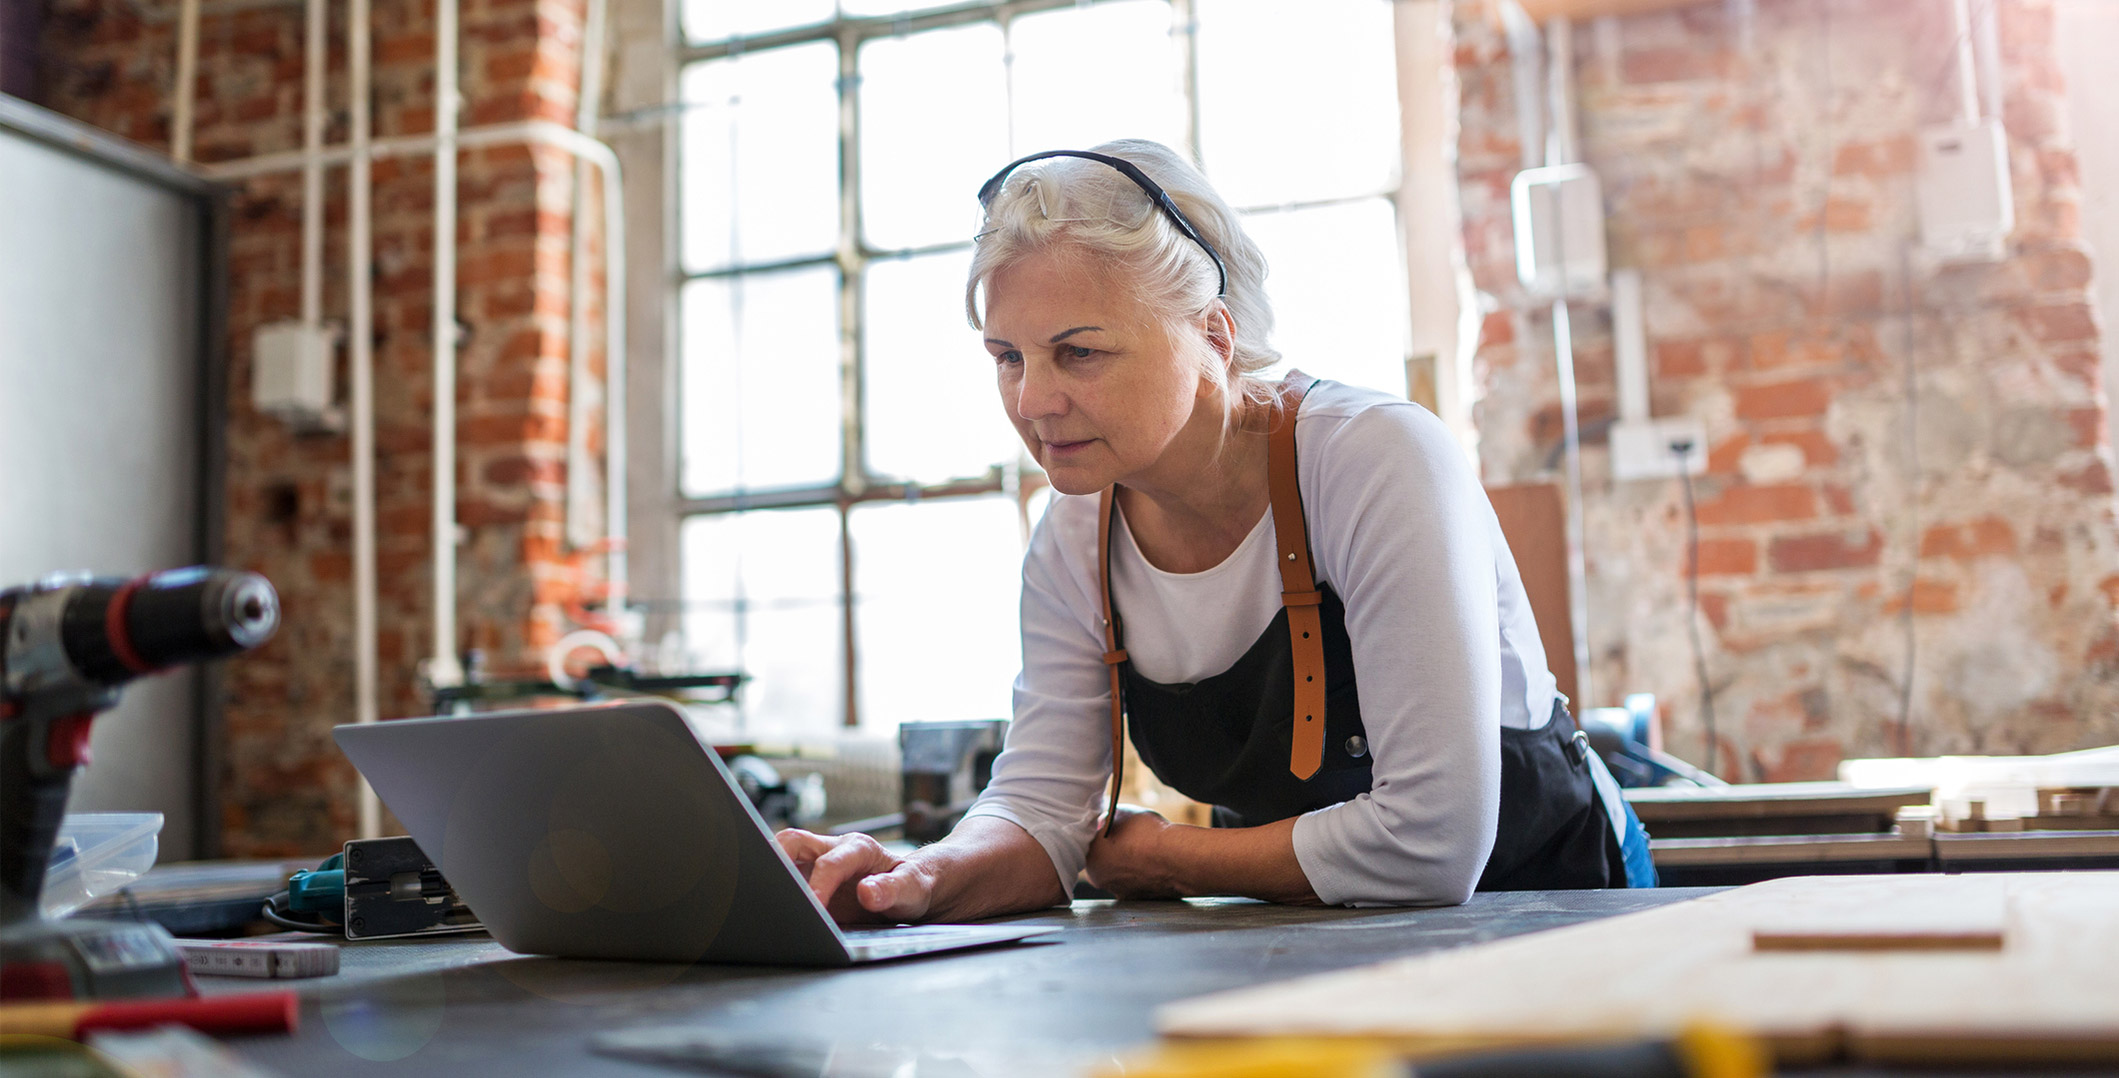 Older lady working with laptop and various tools